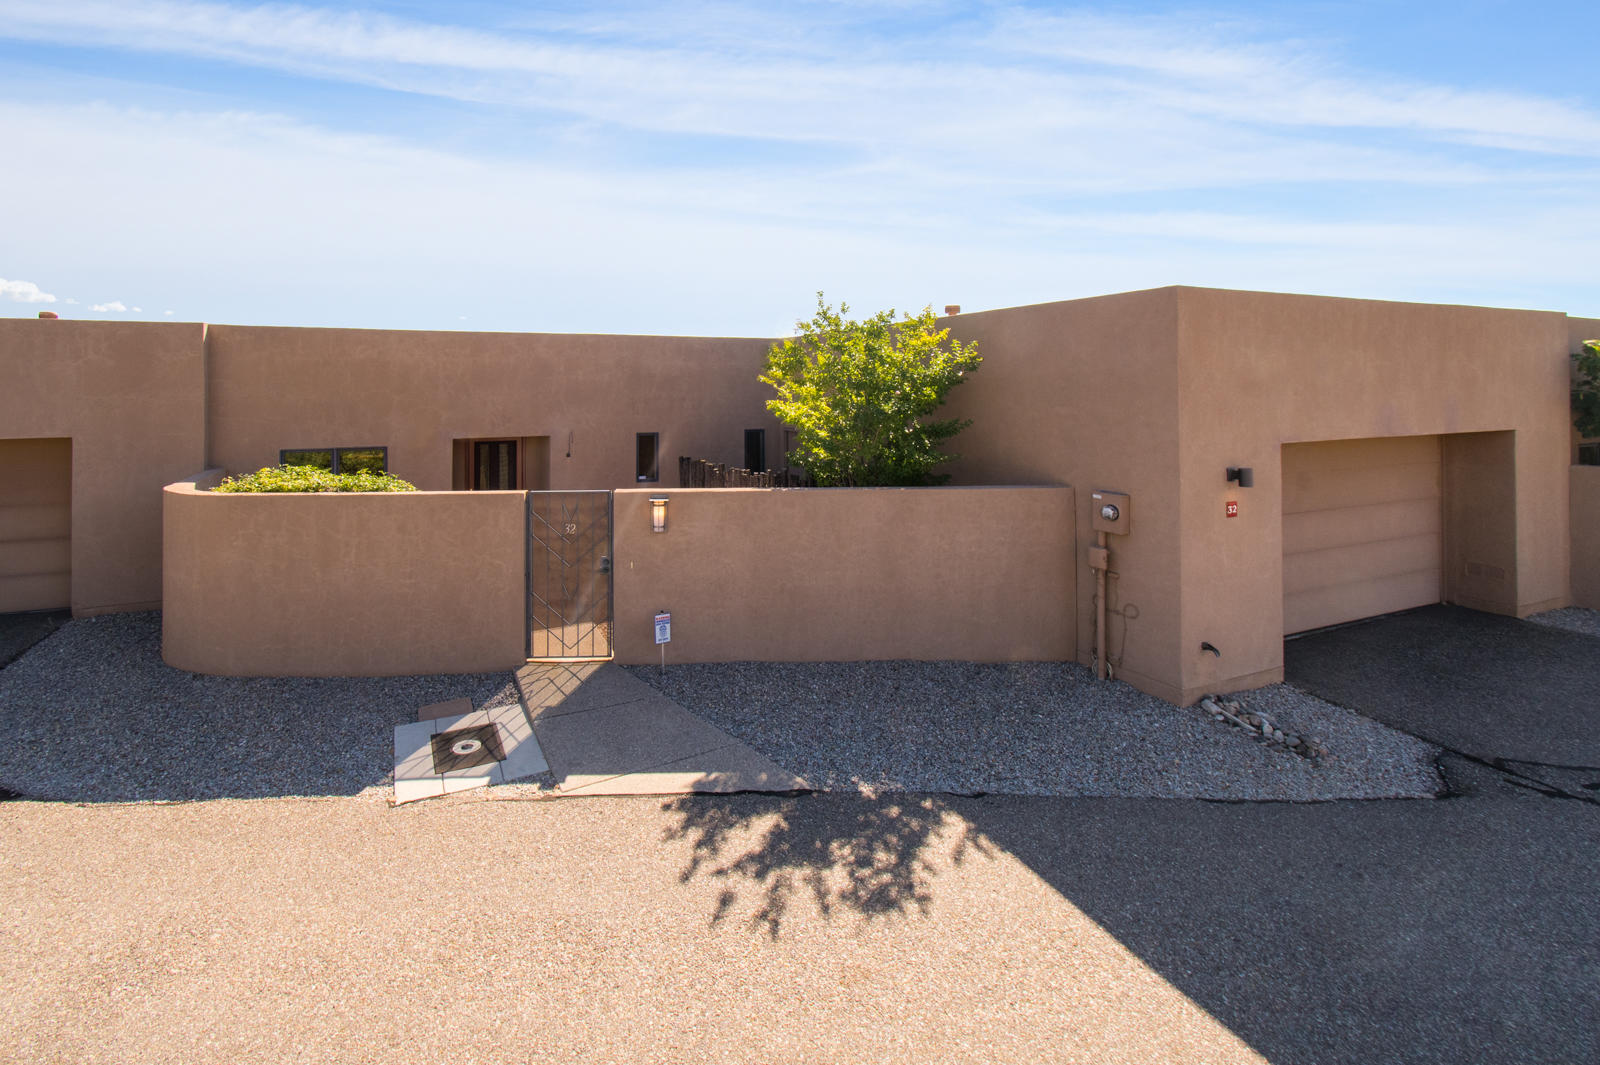 32 NW Wind Road, Northwest Albuquerque and Northwest Heights, New Mexico